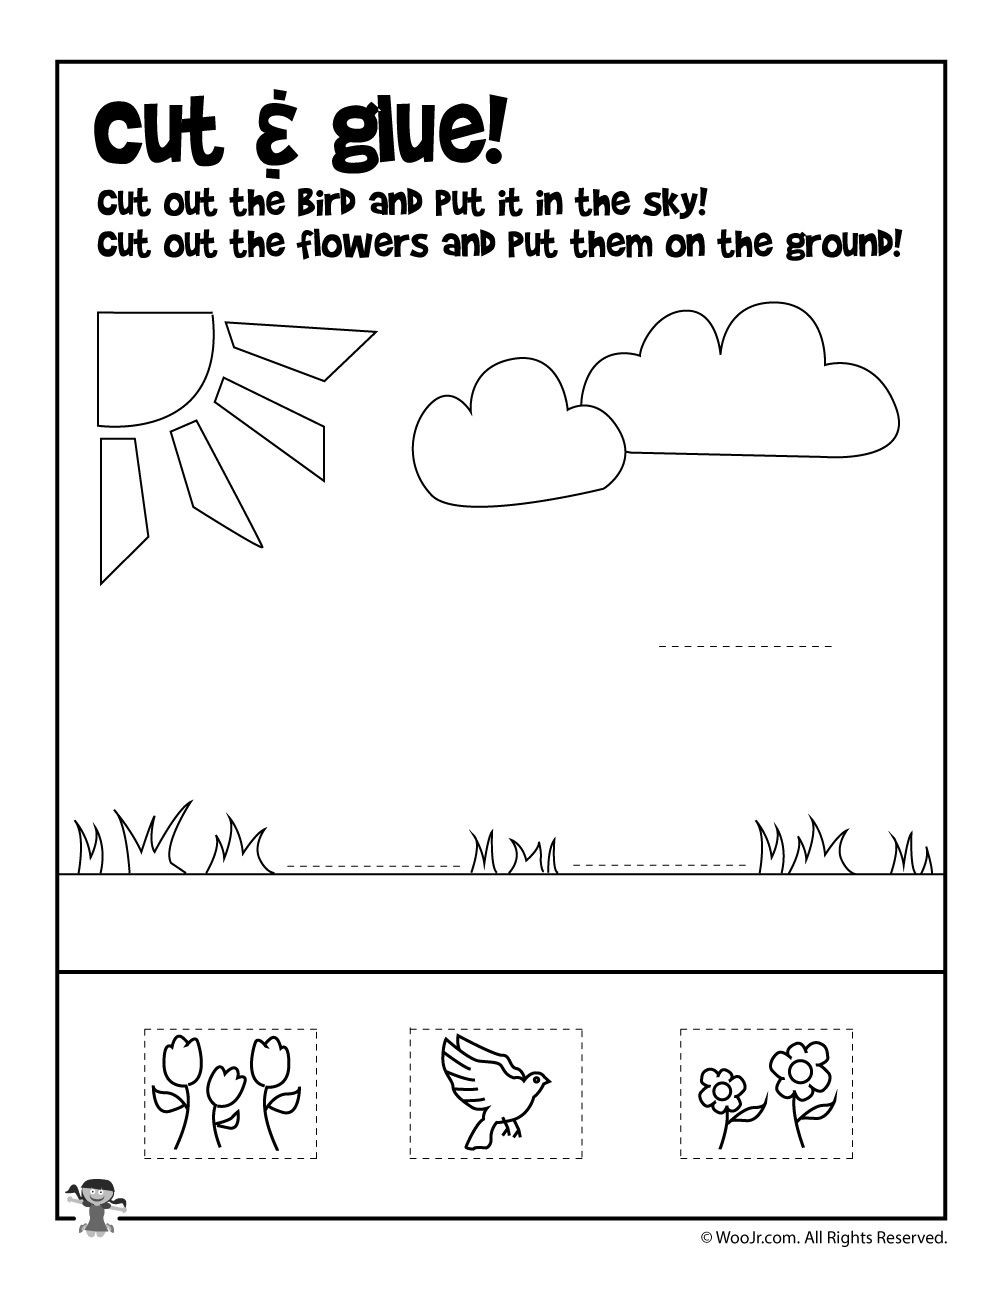 Printable Cutting Worksheets for Preschoolers Printable Activity Sheets for Kids Image Inspirations Pin